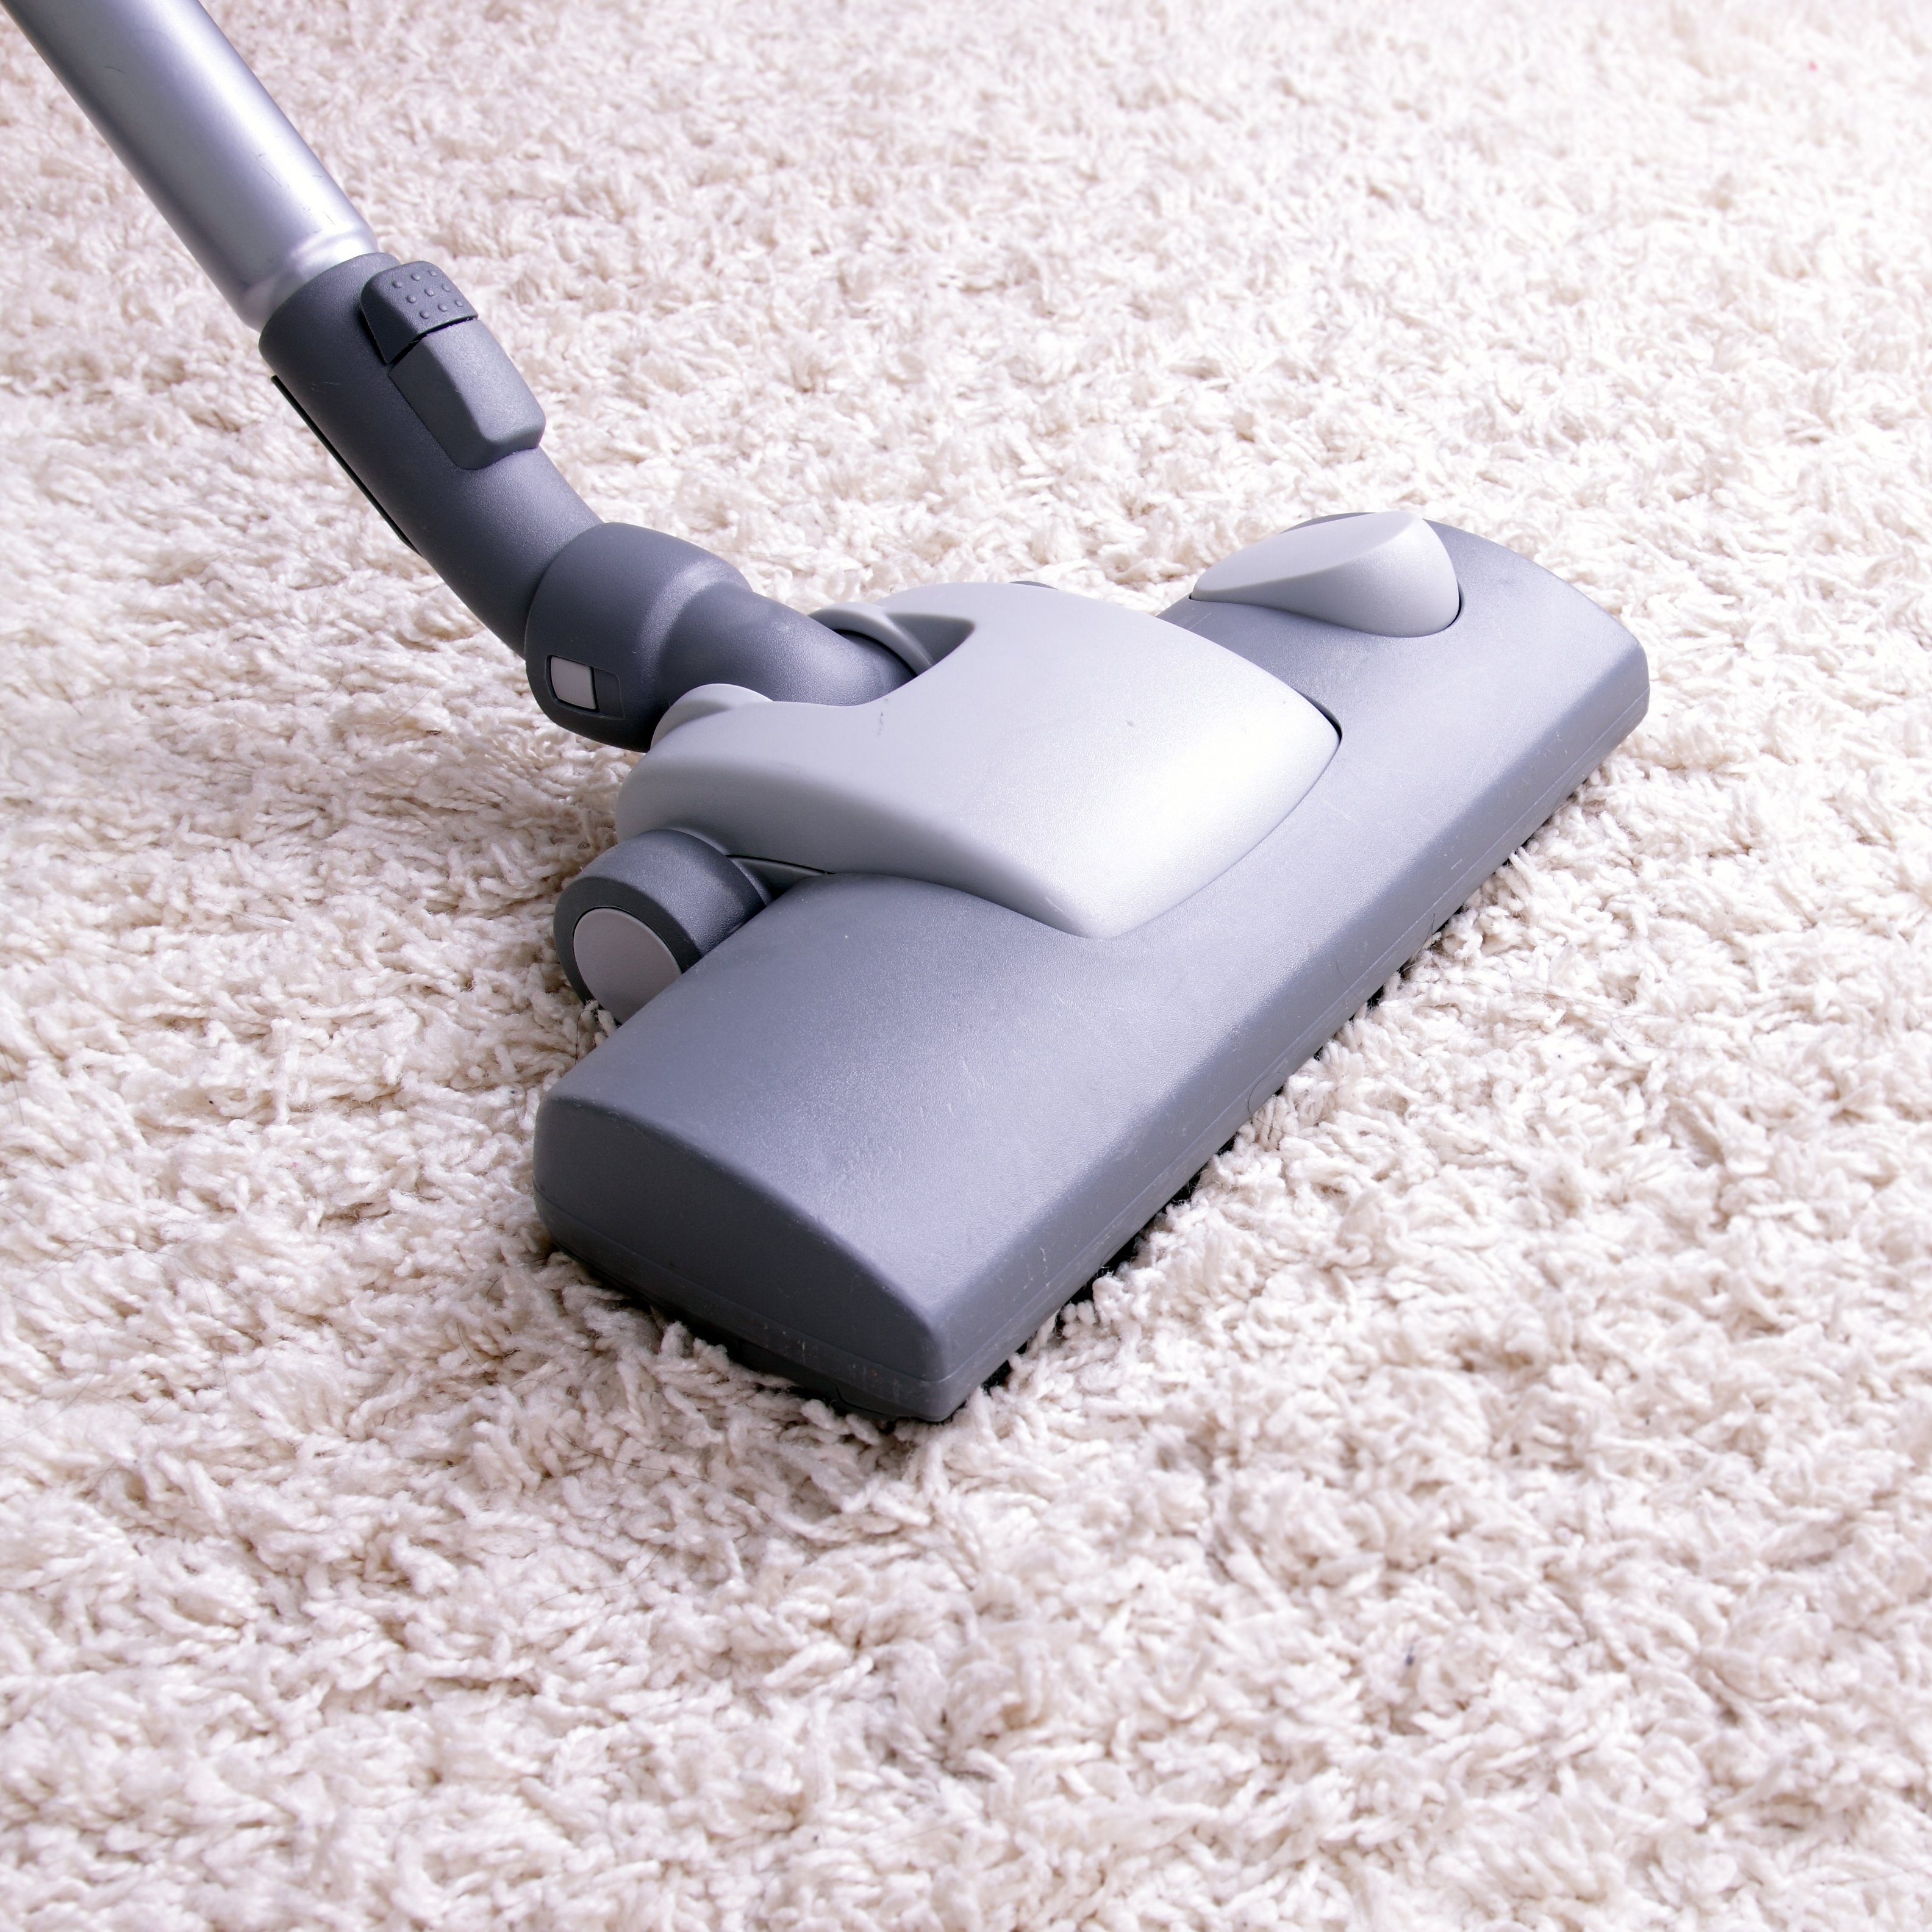 Vacuuming, Professional Carpet Cleaning, Carpet and Upholstery Cleaning, Carpet Dry Express, Devizes, Wiltshire